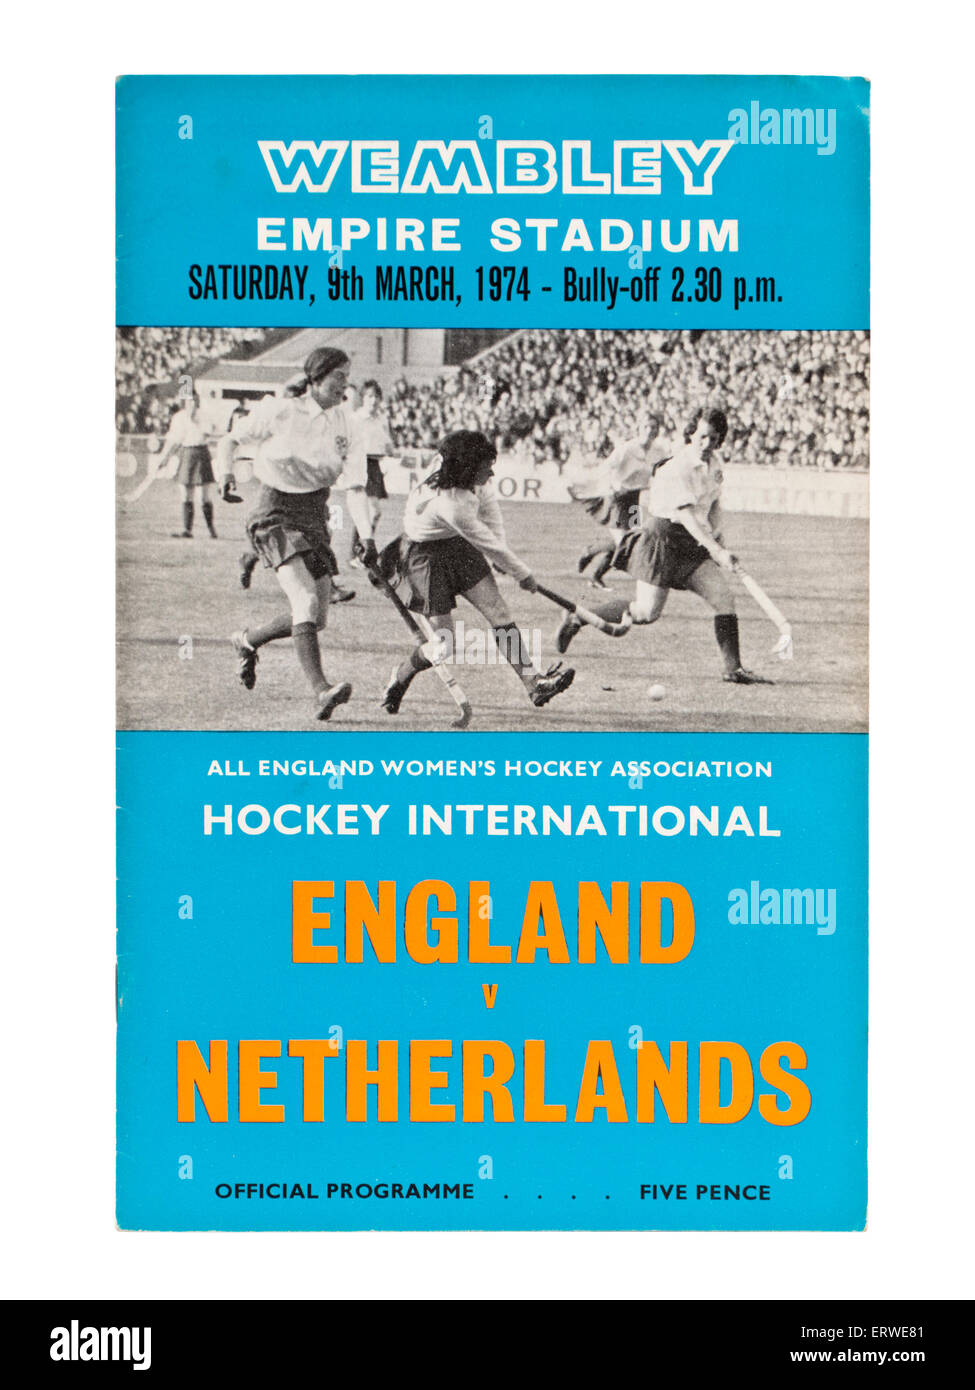 Programme of England versus Netherlands hockey international at Wembley Empire Stadium on 9th March 1974. - Stock Image